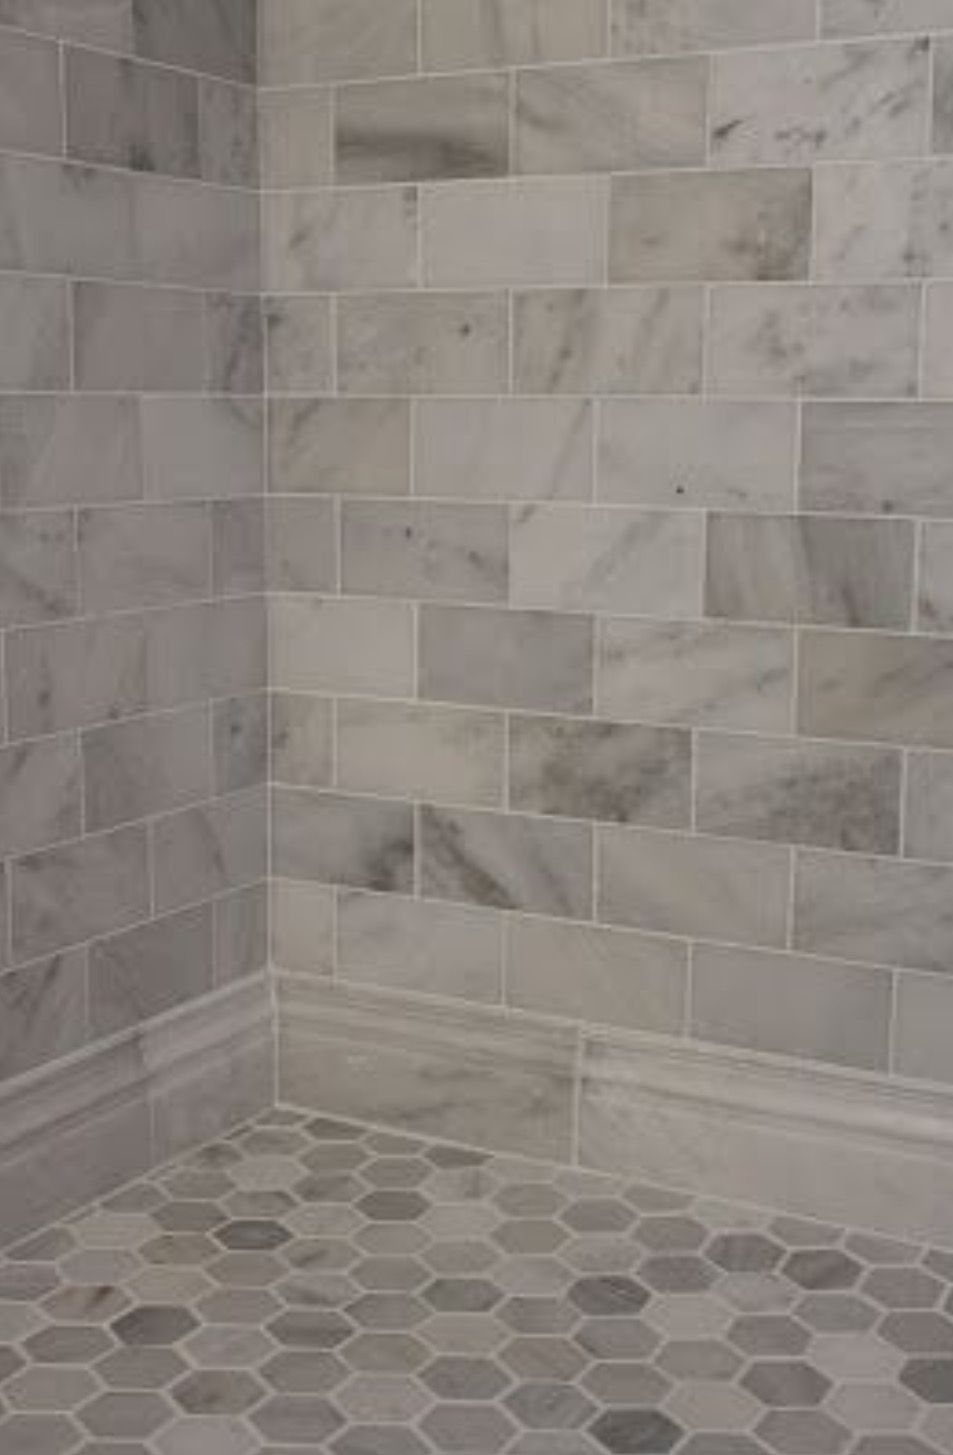 Carrera Marble Subway Tiles And Honed Marble Hexagon Floor